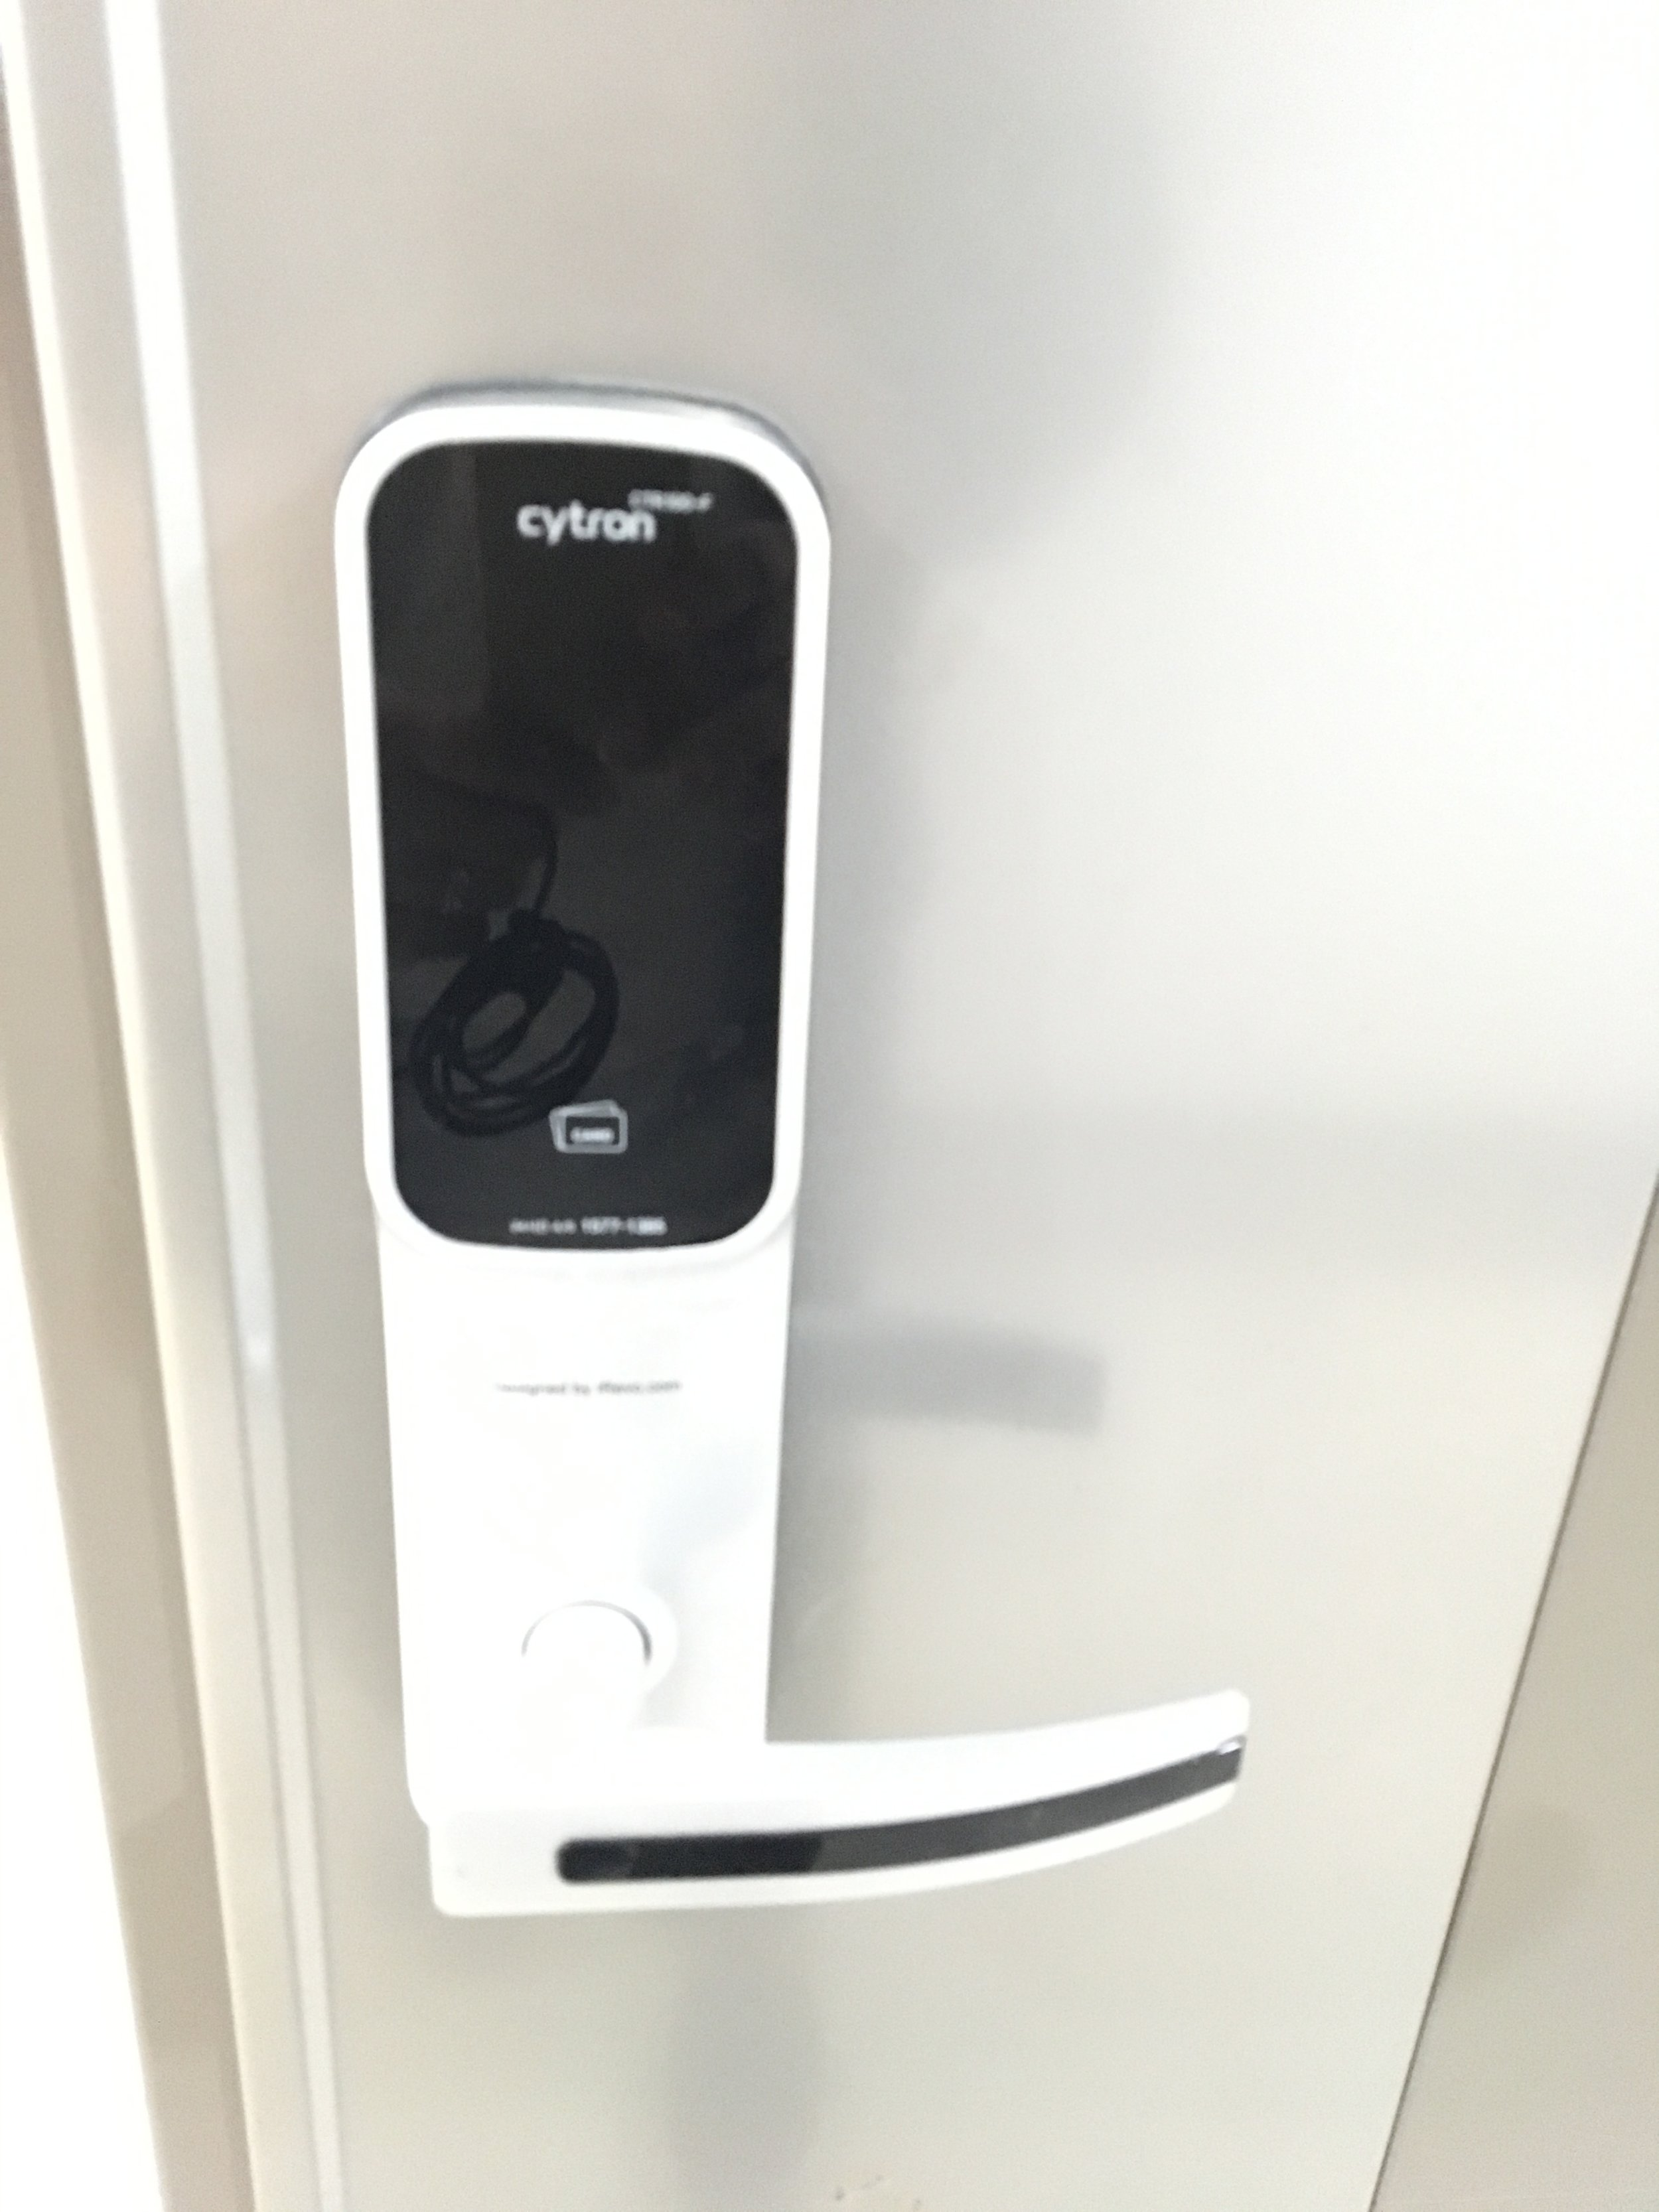 9. heat touch sensor door - Please put your palm softly on the black pad. Then numbers will appear like next picture.